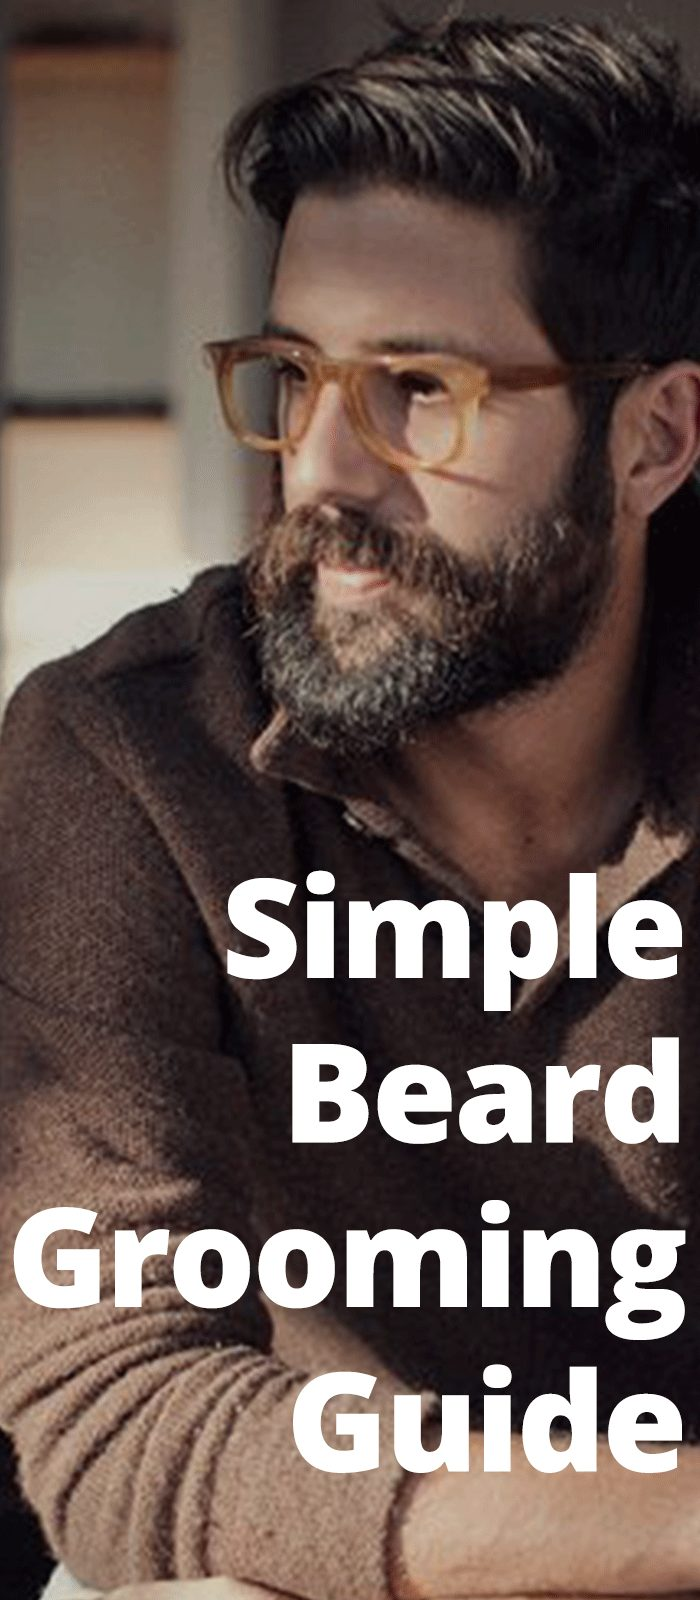 Simple Beard Grooming Guide